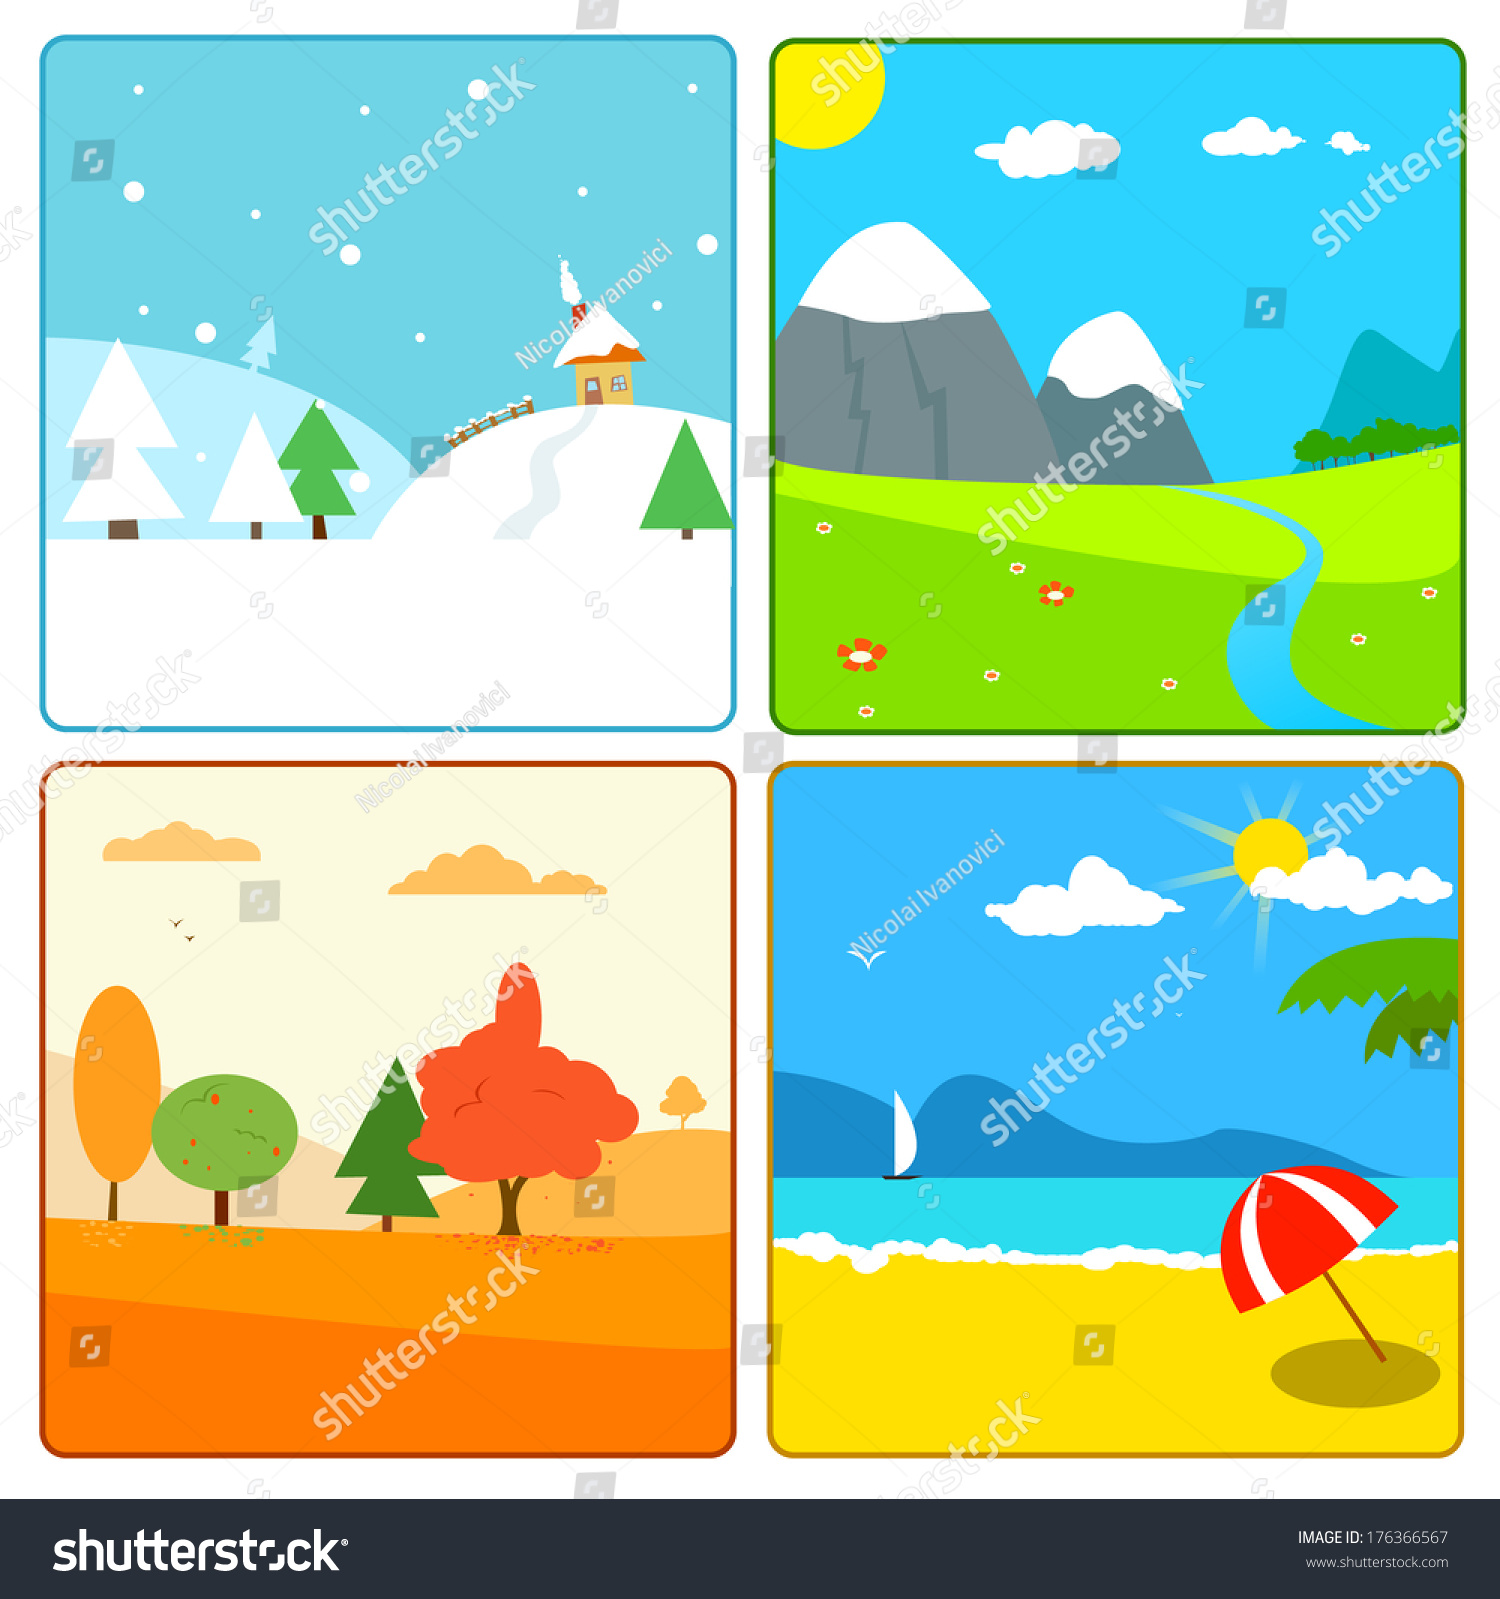 Illustration of 4 season